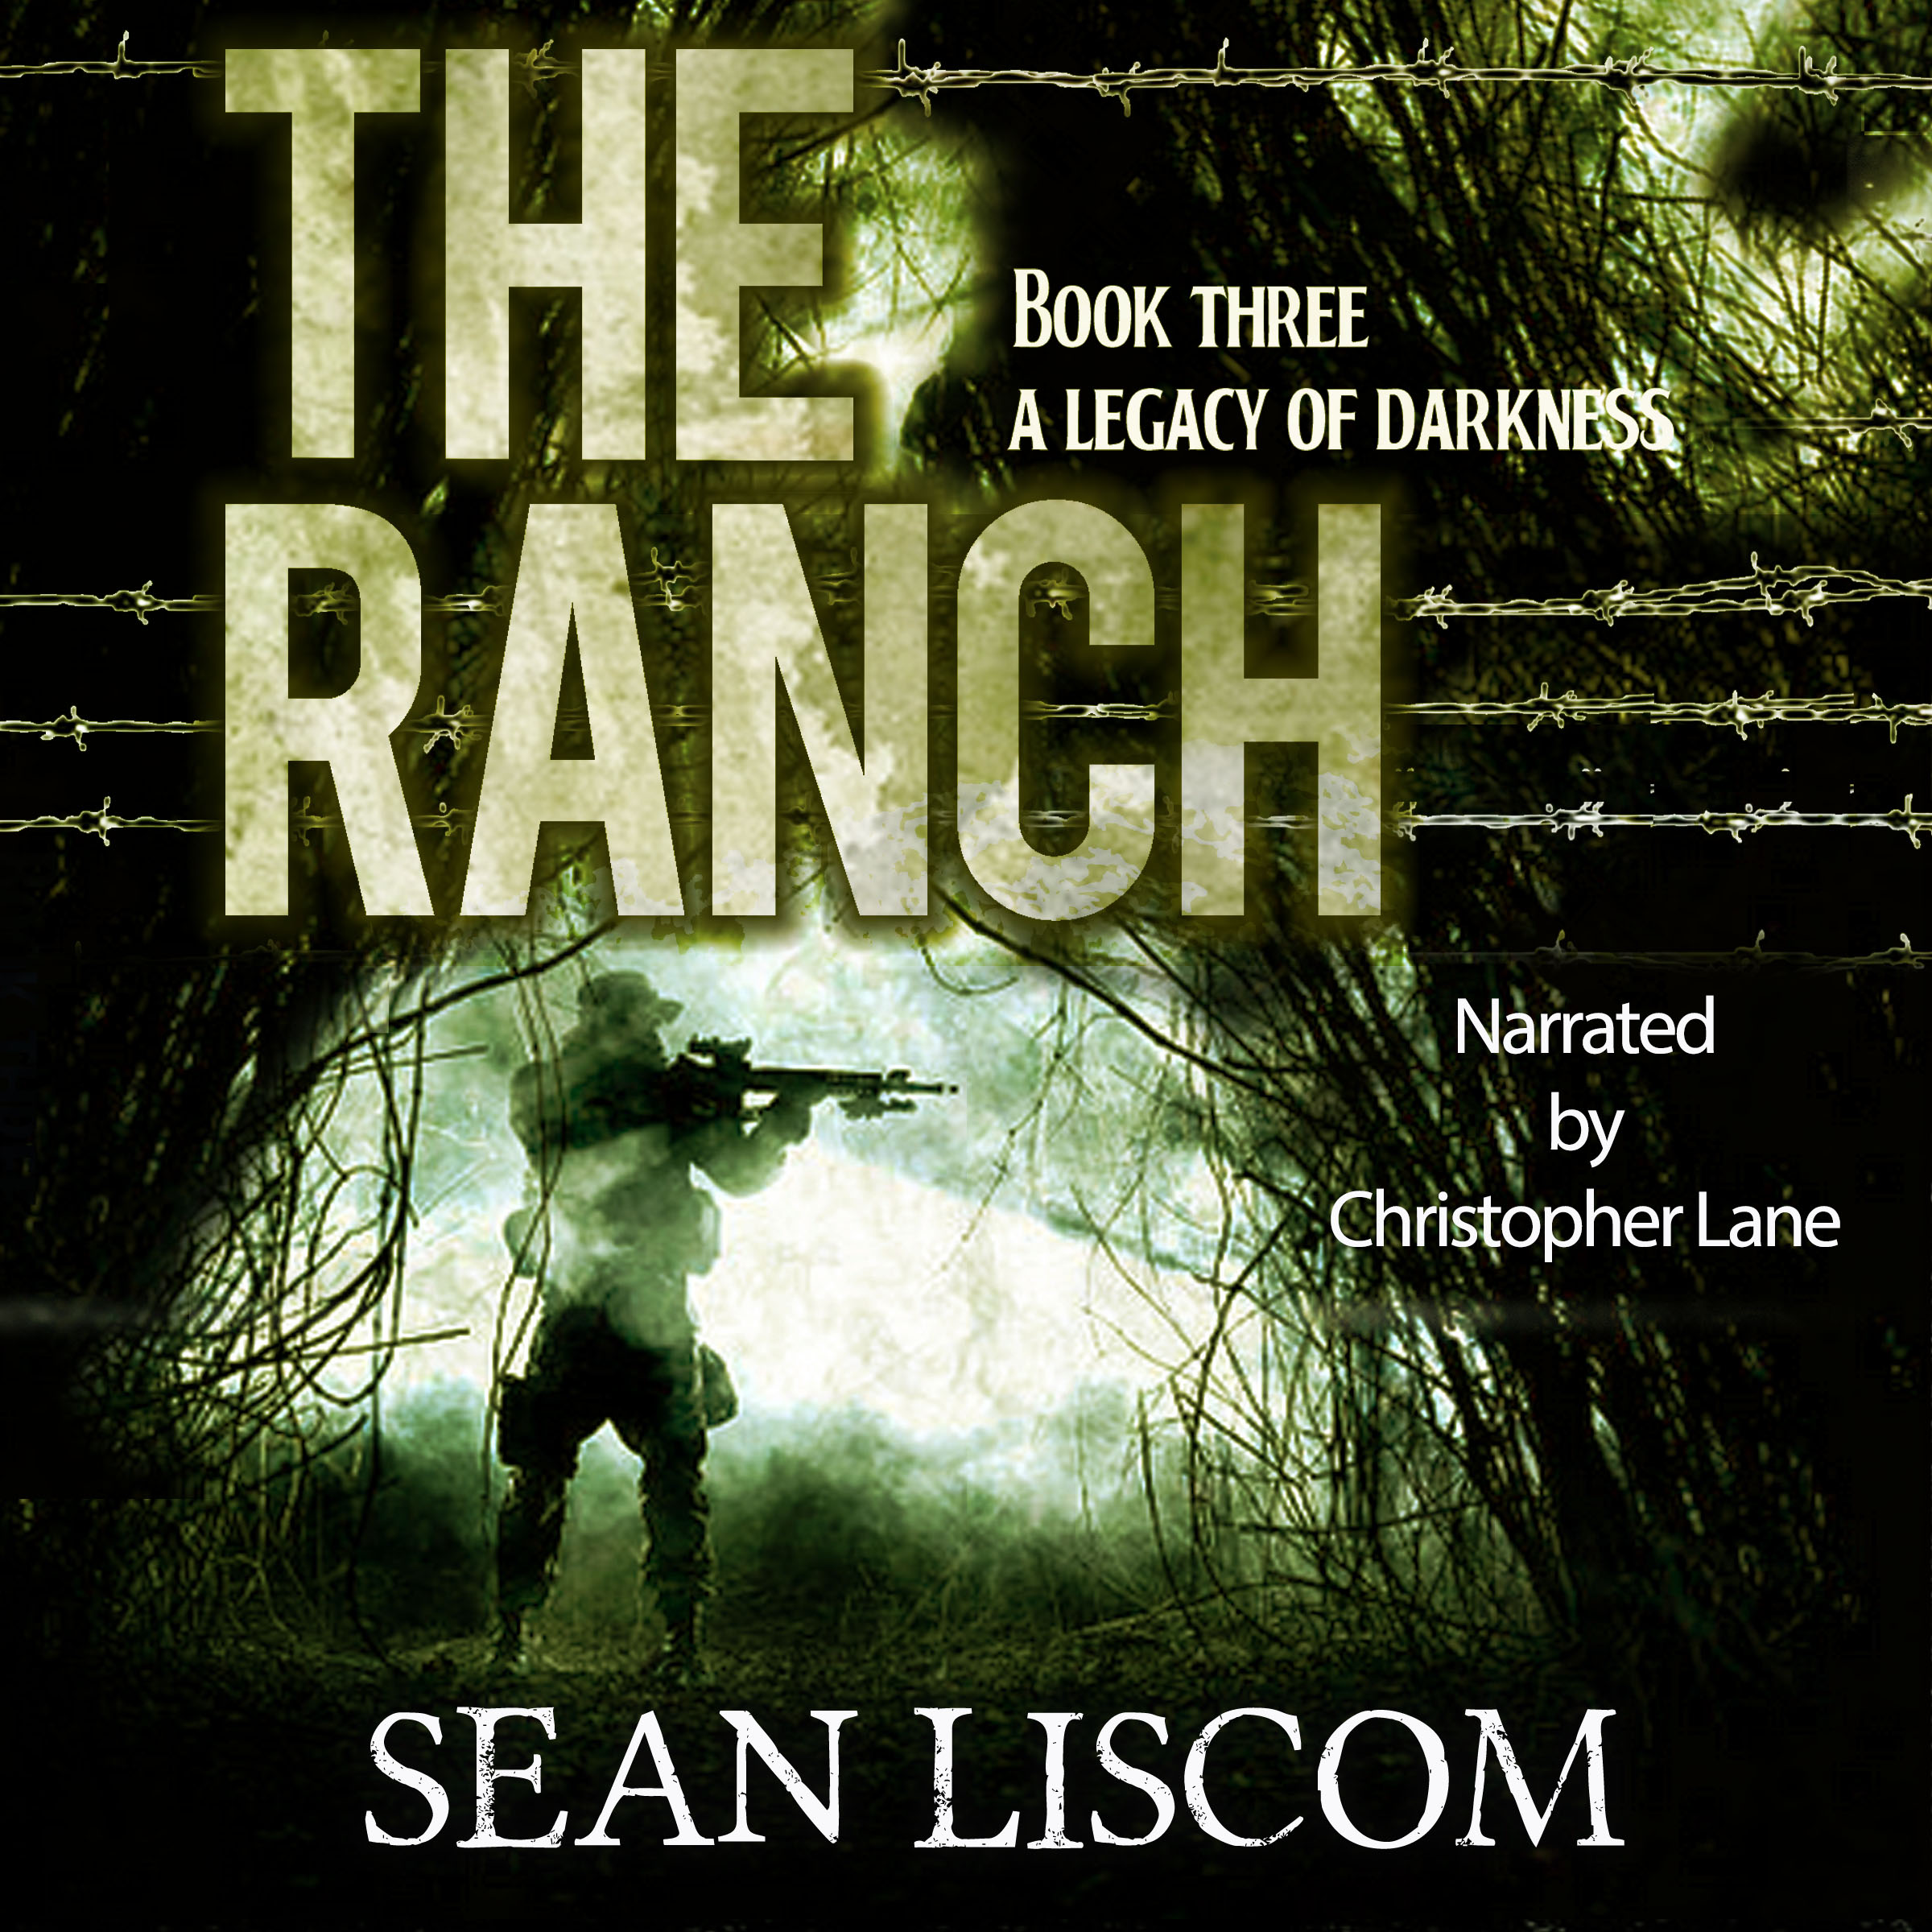 The Ranch Book 3 by Sean Liscom Audiobook Cover